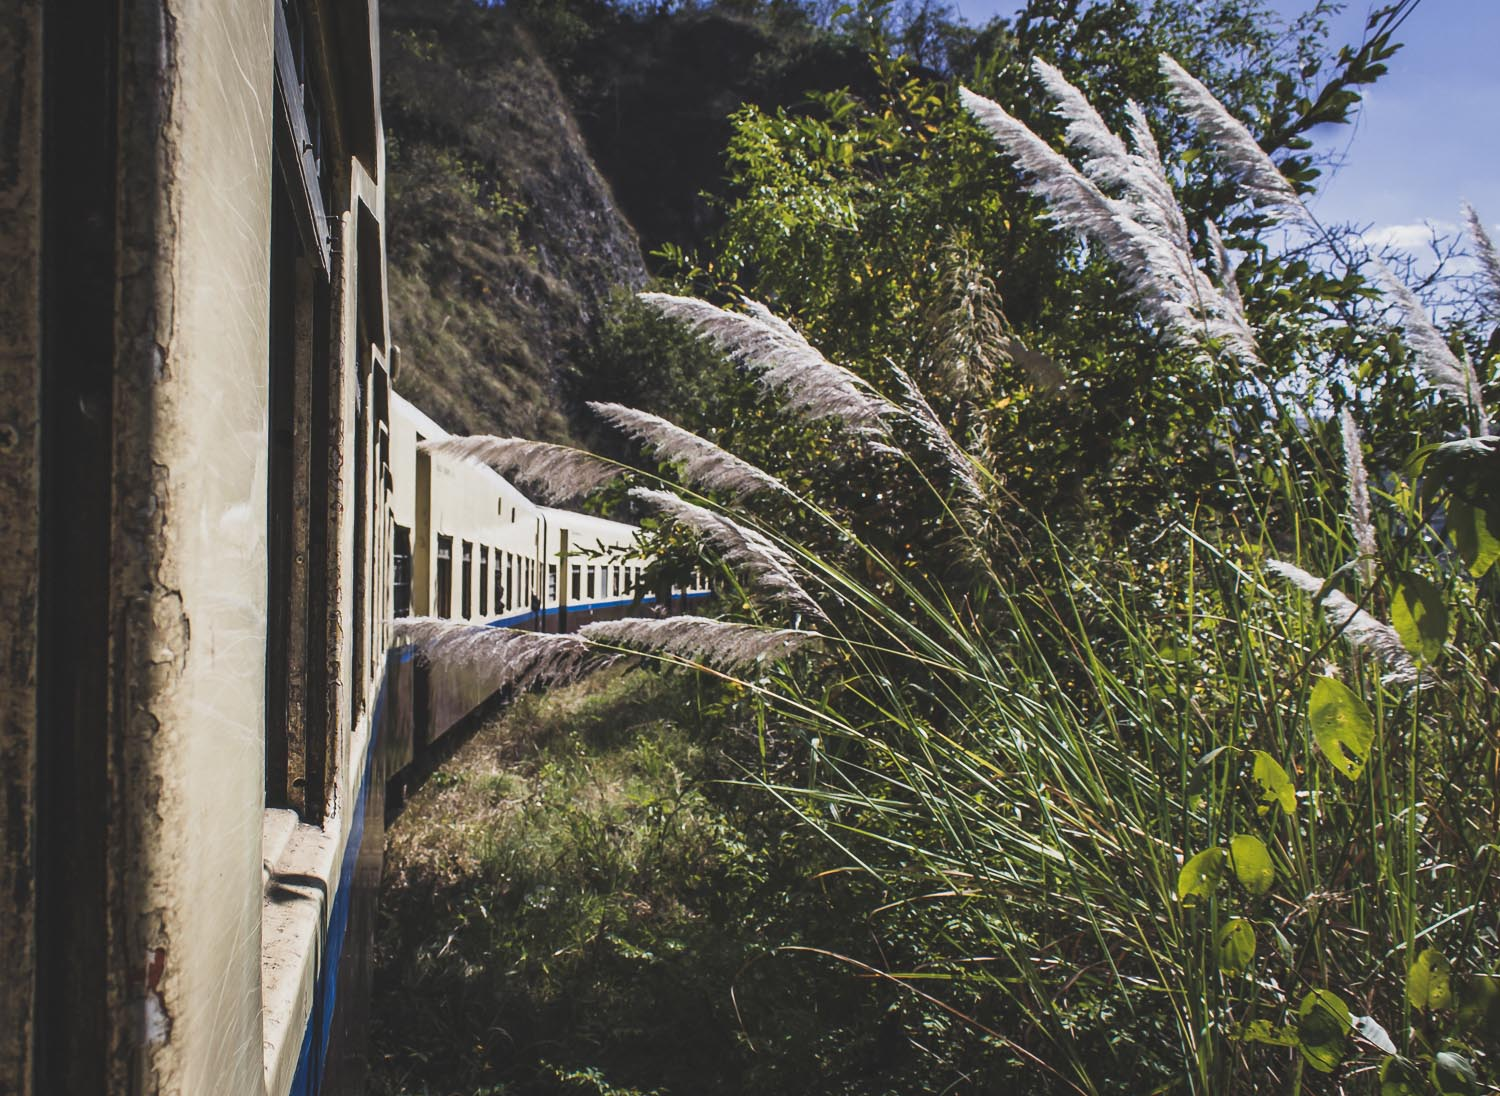 Burmese-Train-Ride_Kelsiespassport-2.jpg